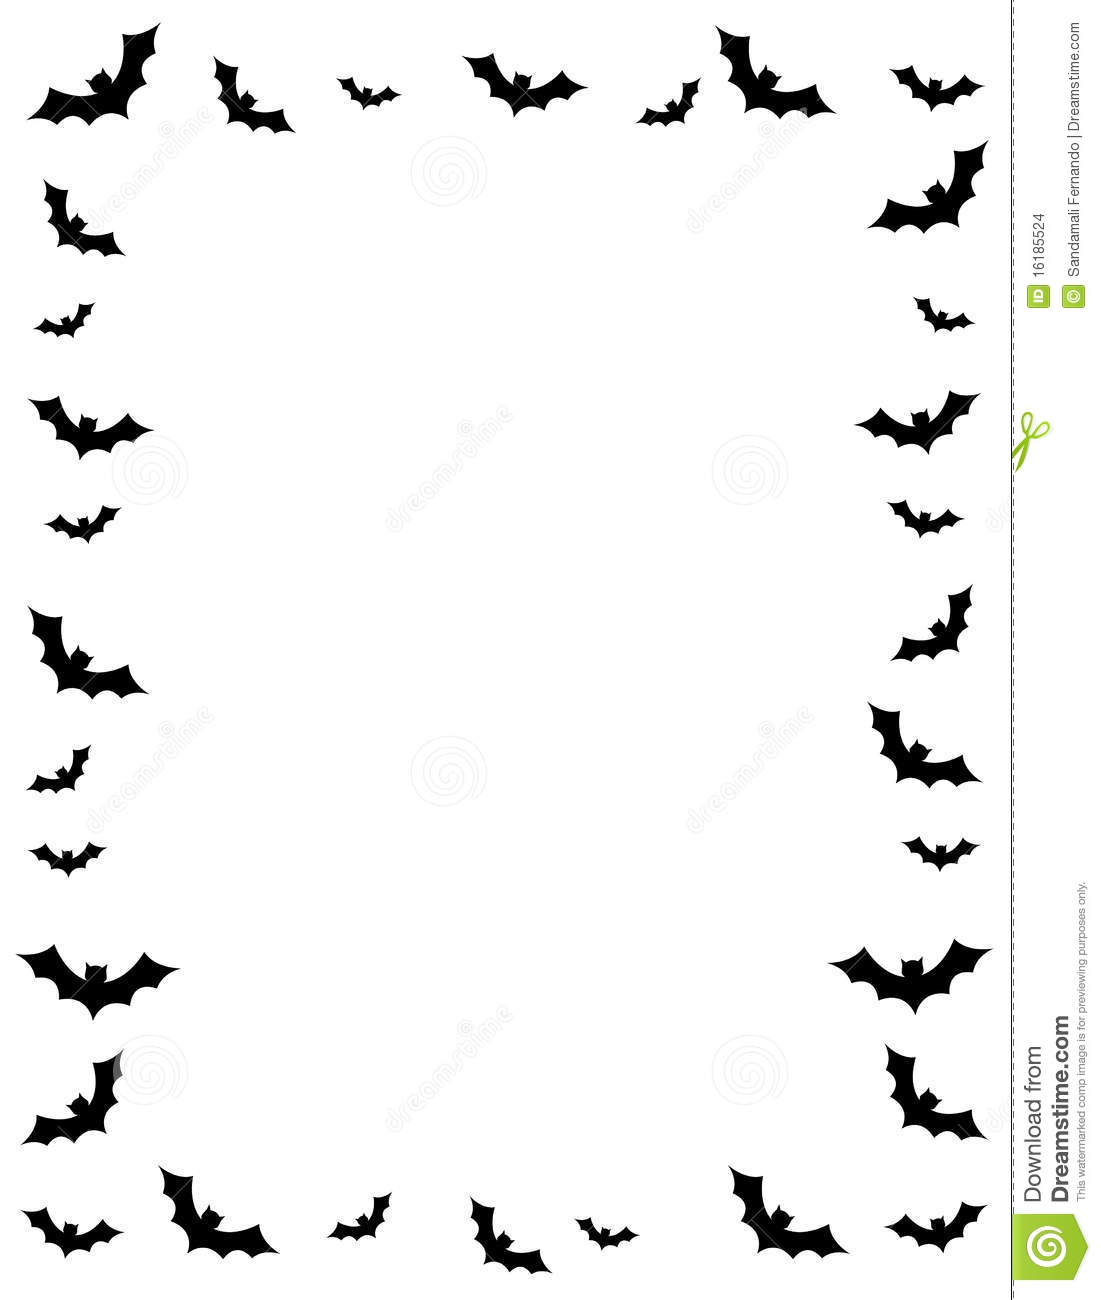 Three Headed Dragon Coloring Pages additionally 4915 as well Mouse Colouring Page in addition Gothic Frames And Borders together with Stock Illustration Vector Border. on scary halloween frames